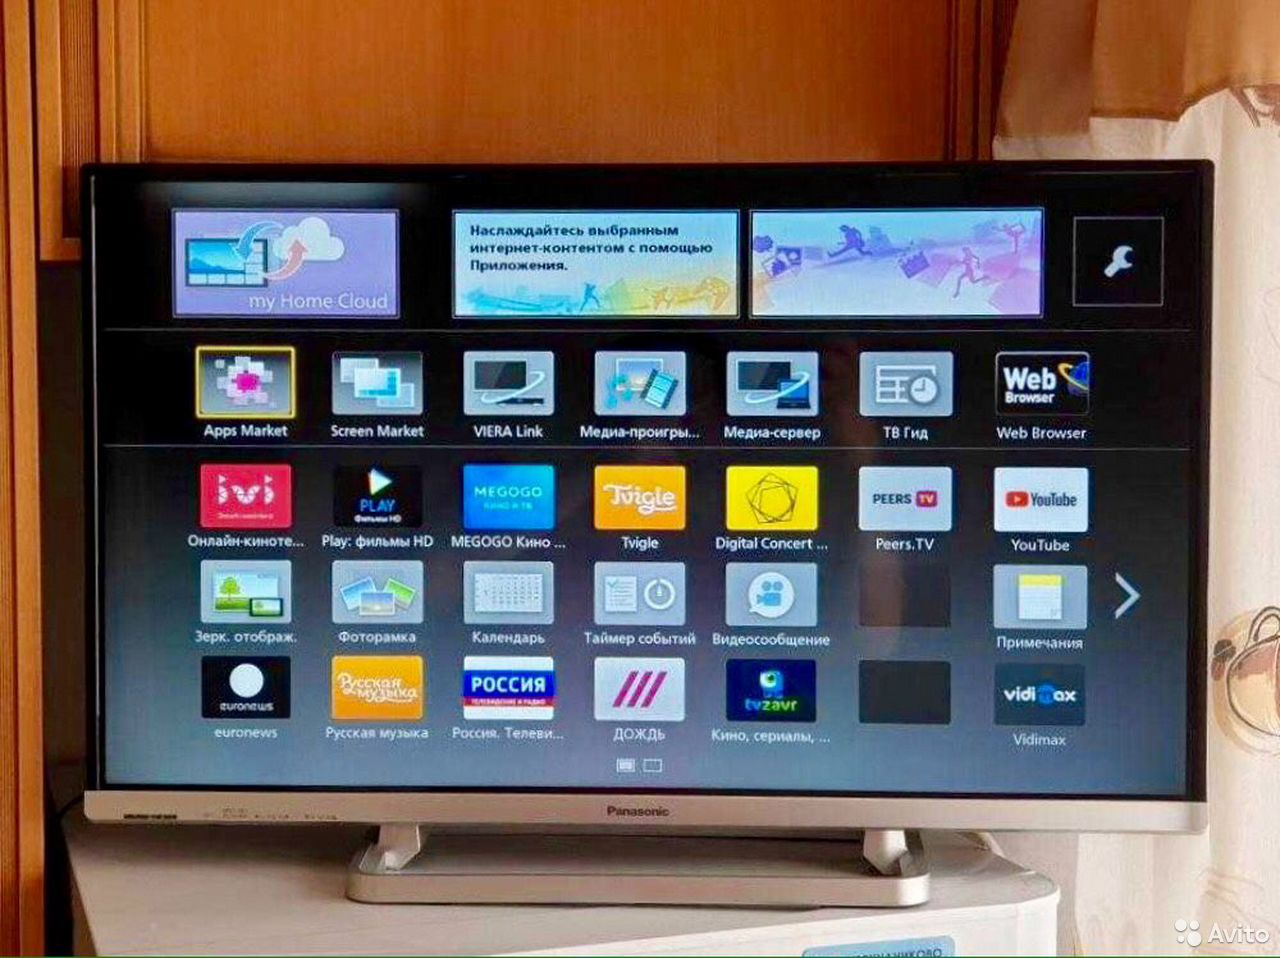 Smart TV WiFi Panasonic 85 см 100Гц DVB-T2 USB CI  89131528957 купить 1